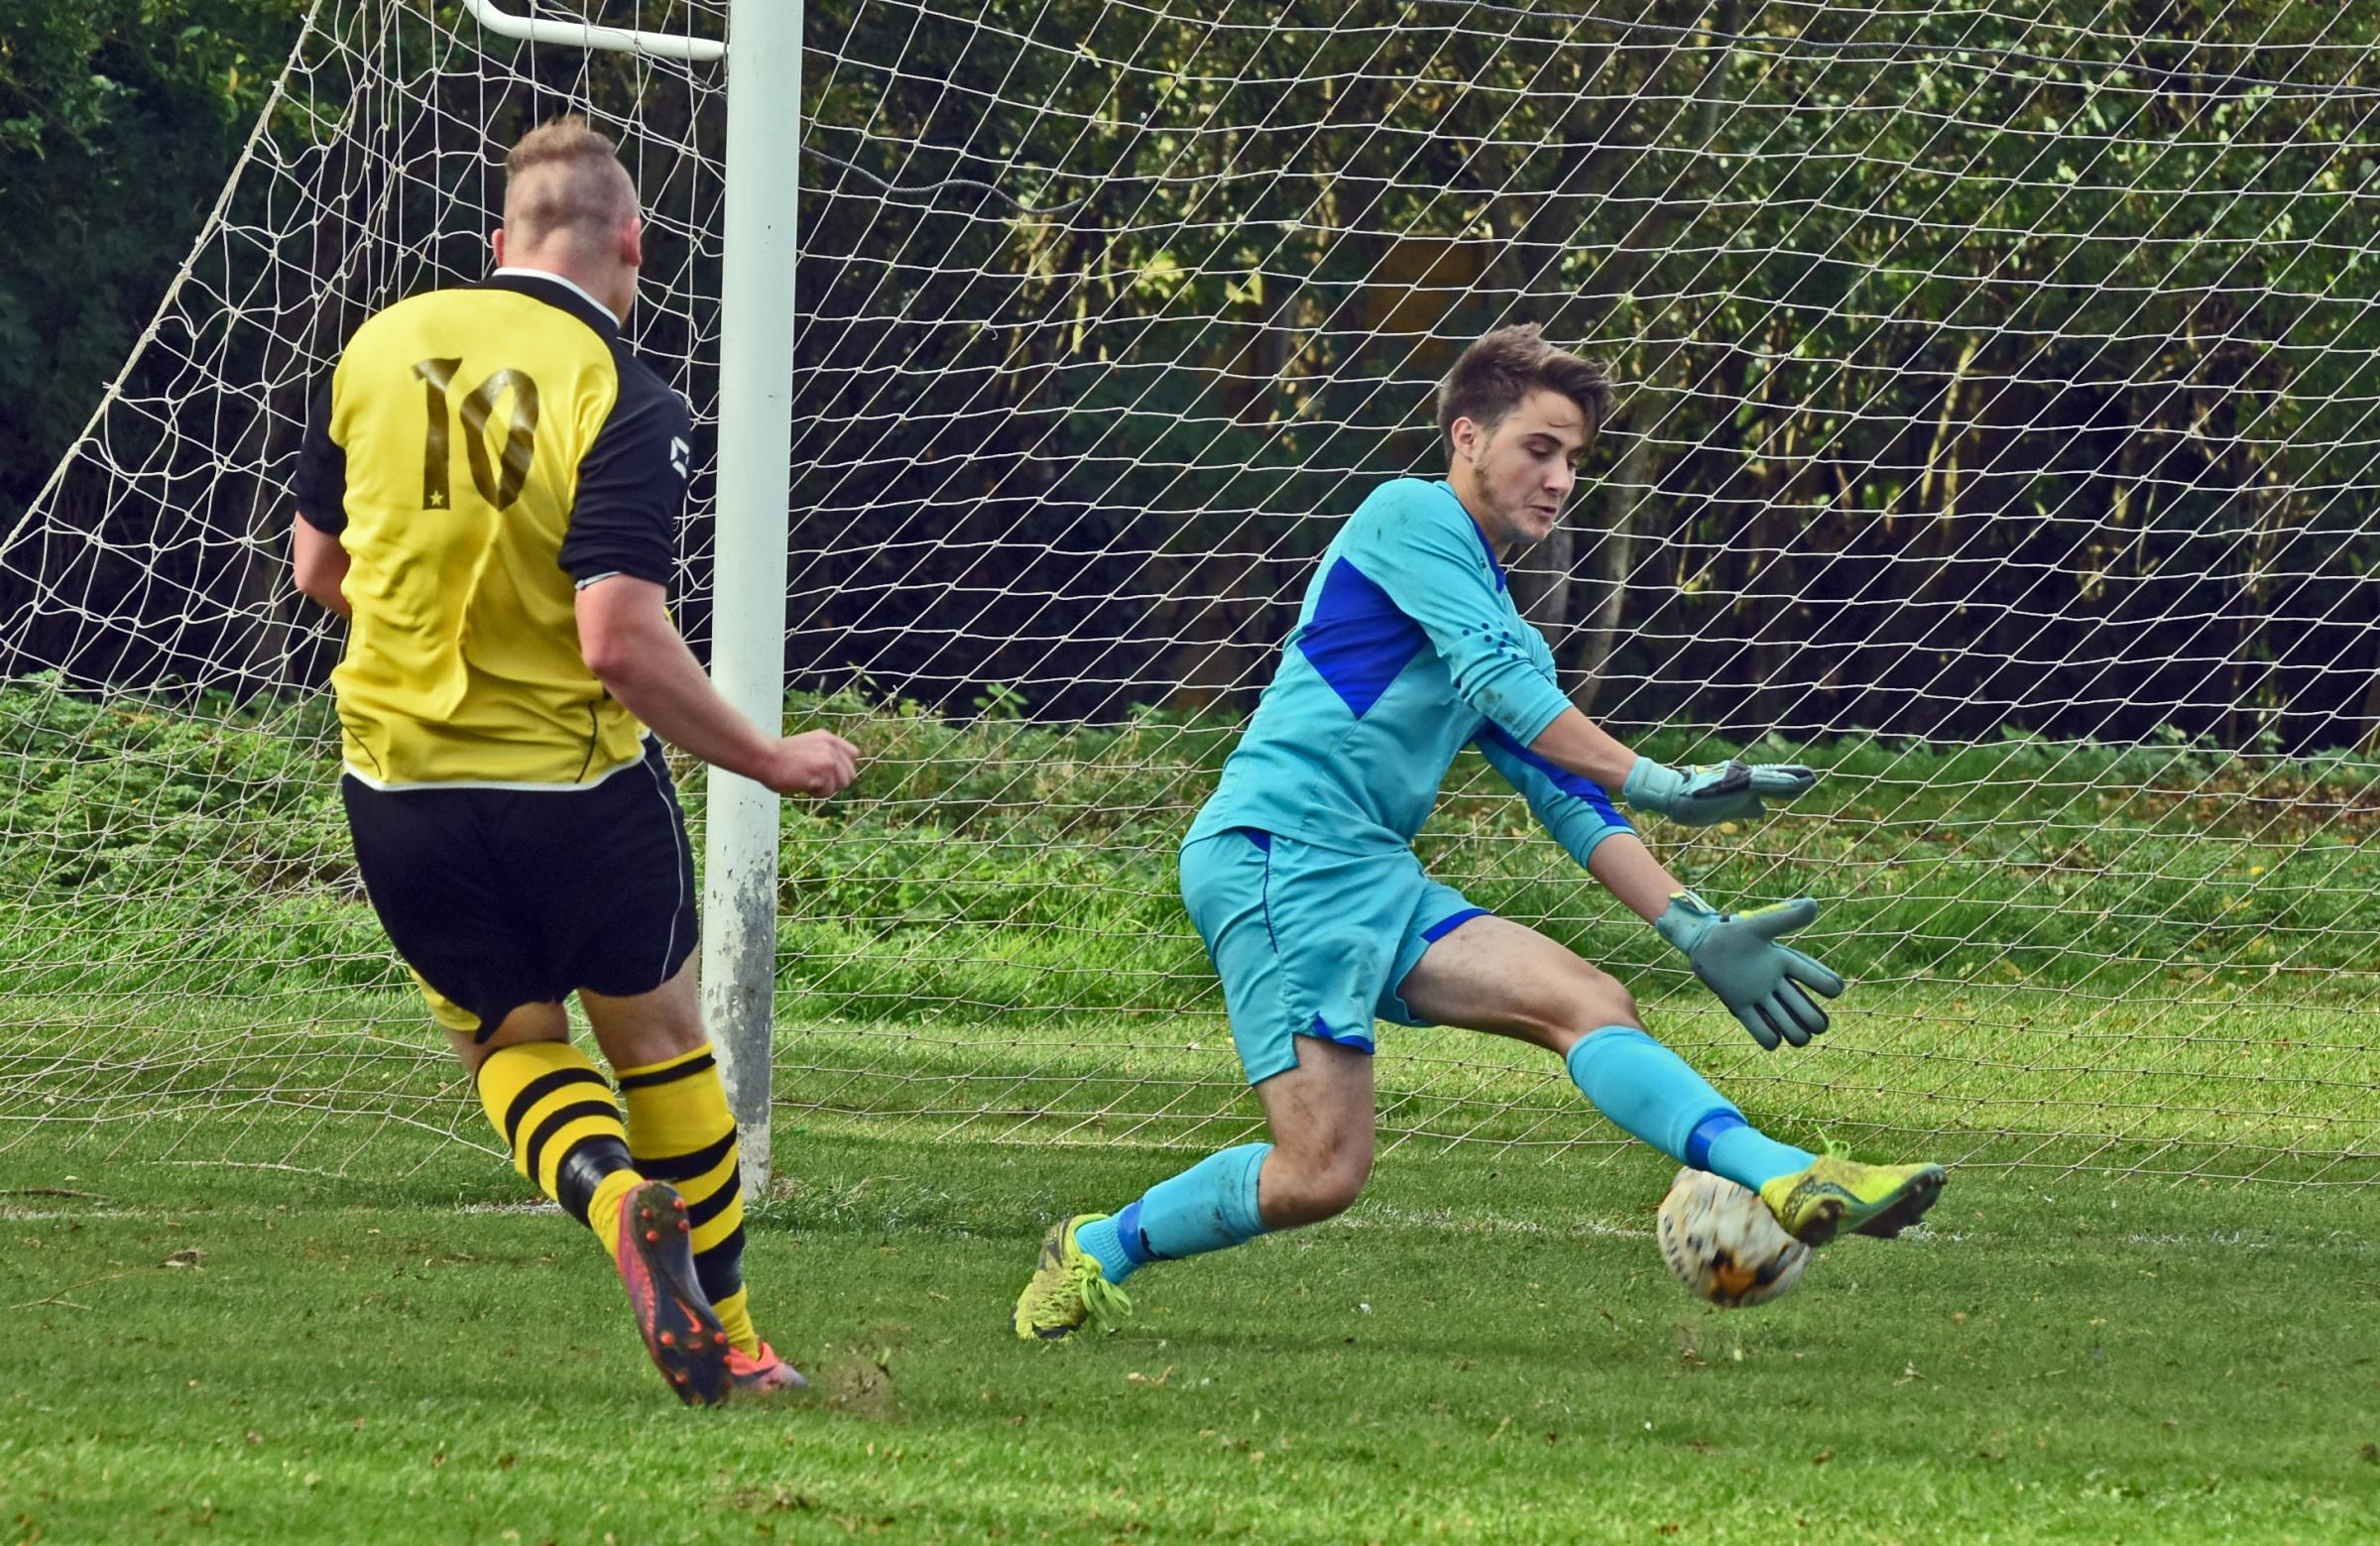 Rufforth striker Danny Cates scores the first goal in the game against Bubwith.Pic Nigel Holland.